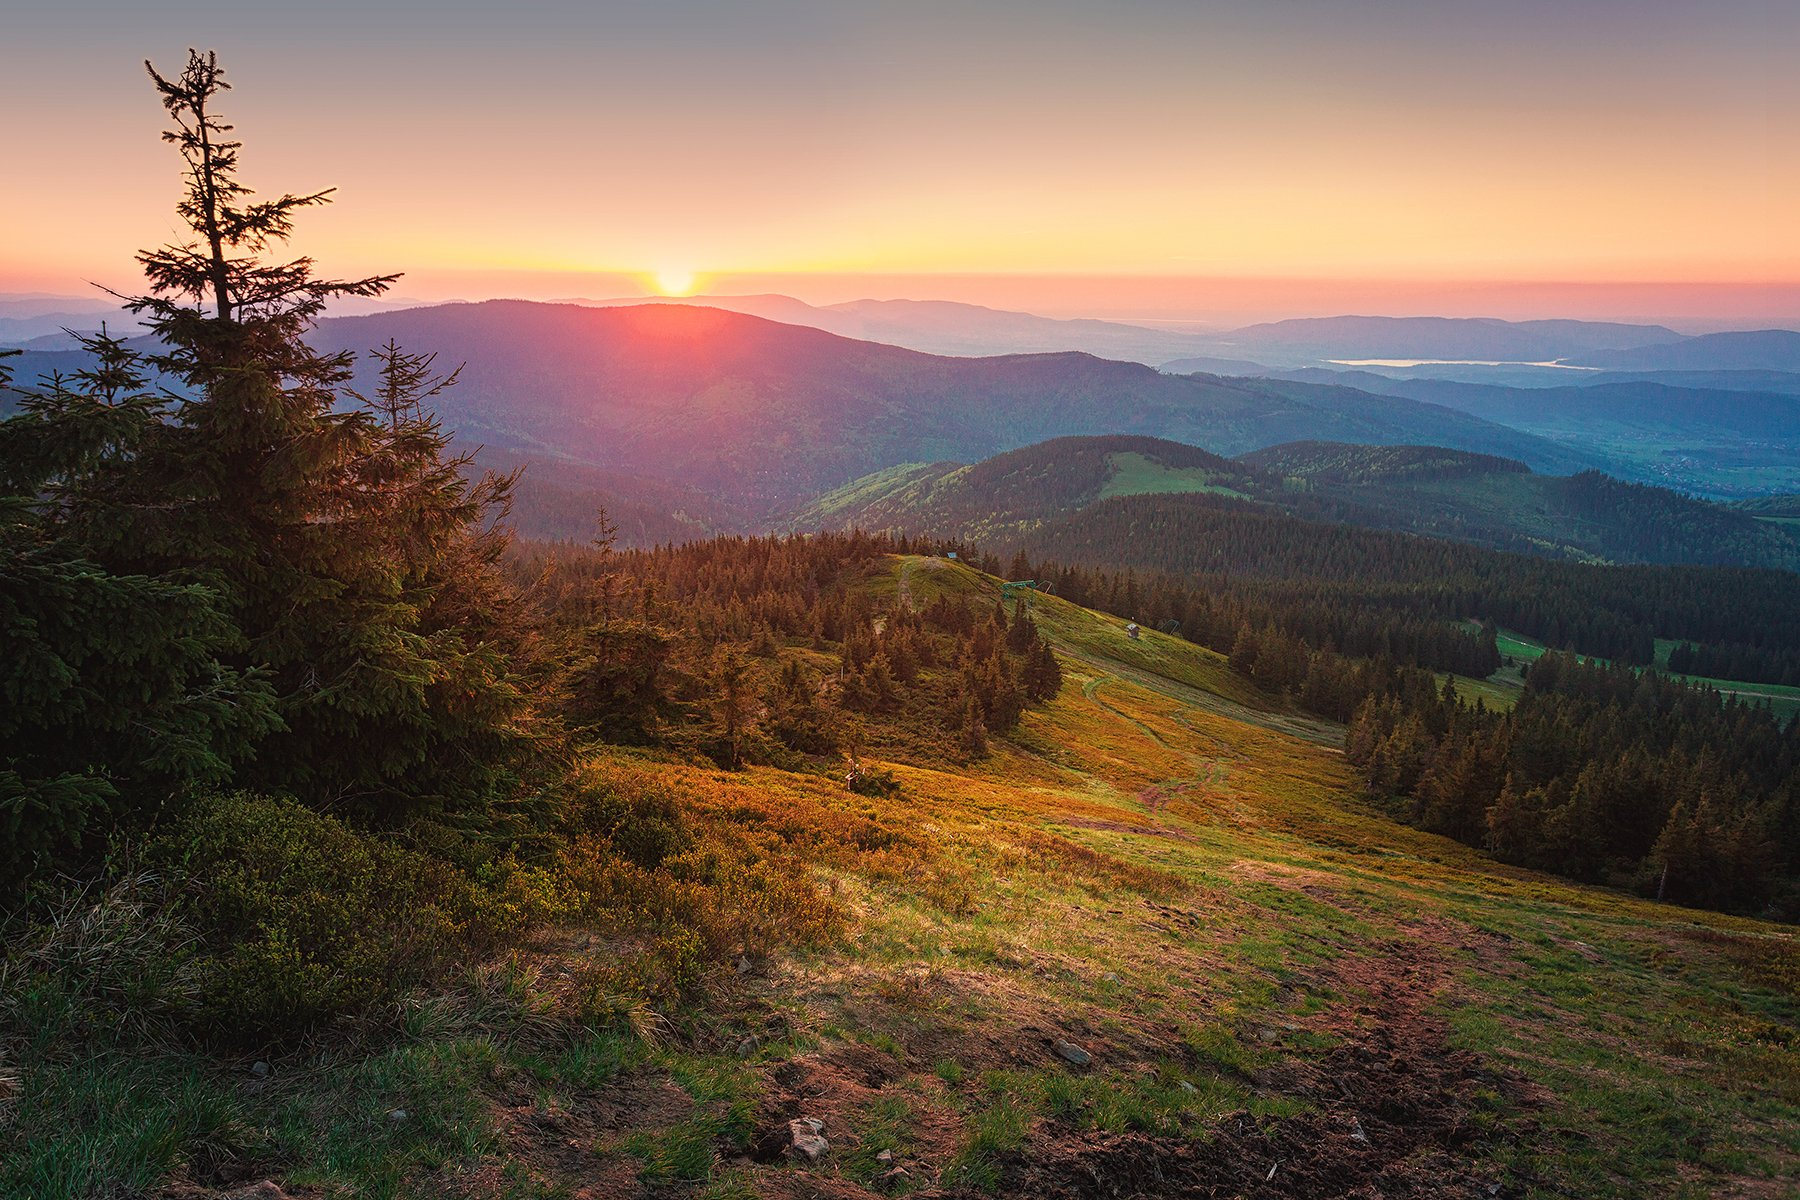 sunset, sunrise, Pilsko, Beskids, Poland, mountains, mountain, , Patrycja